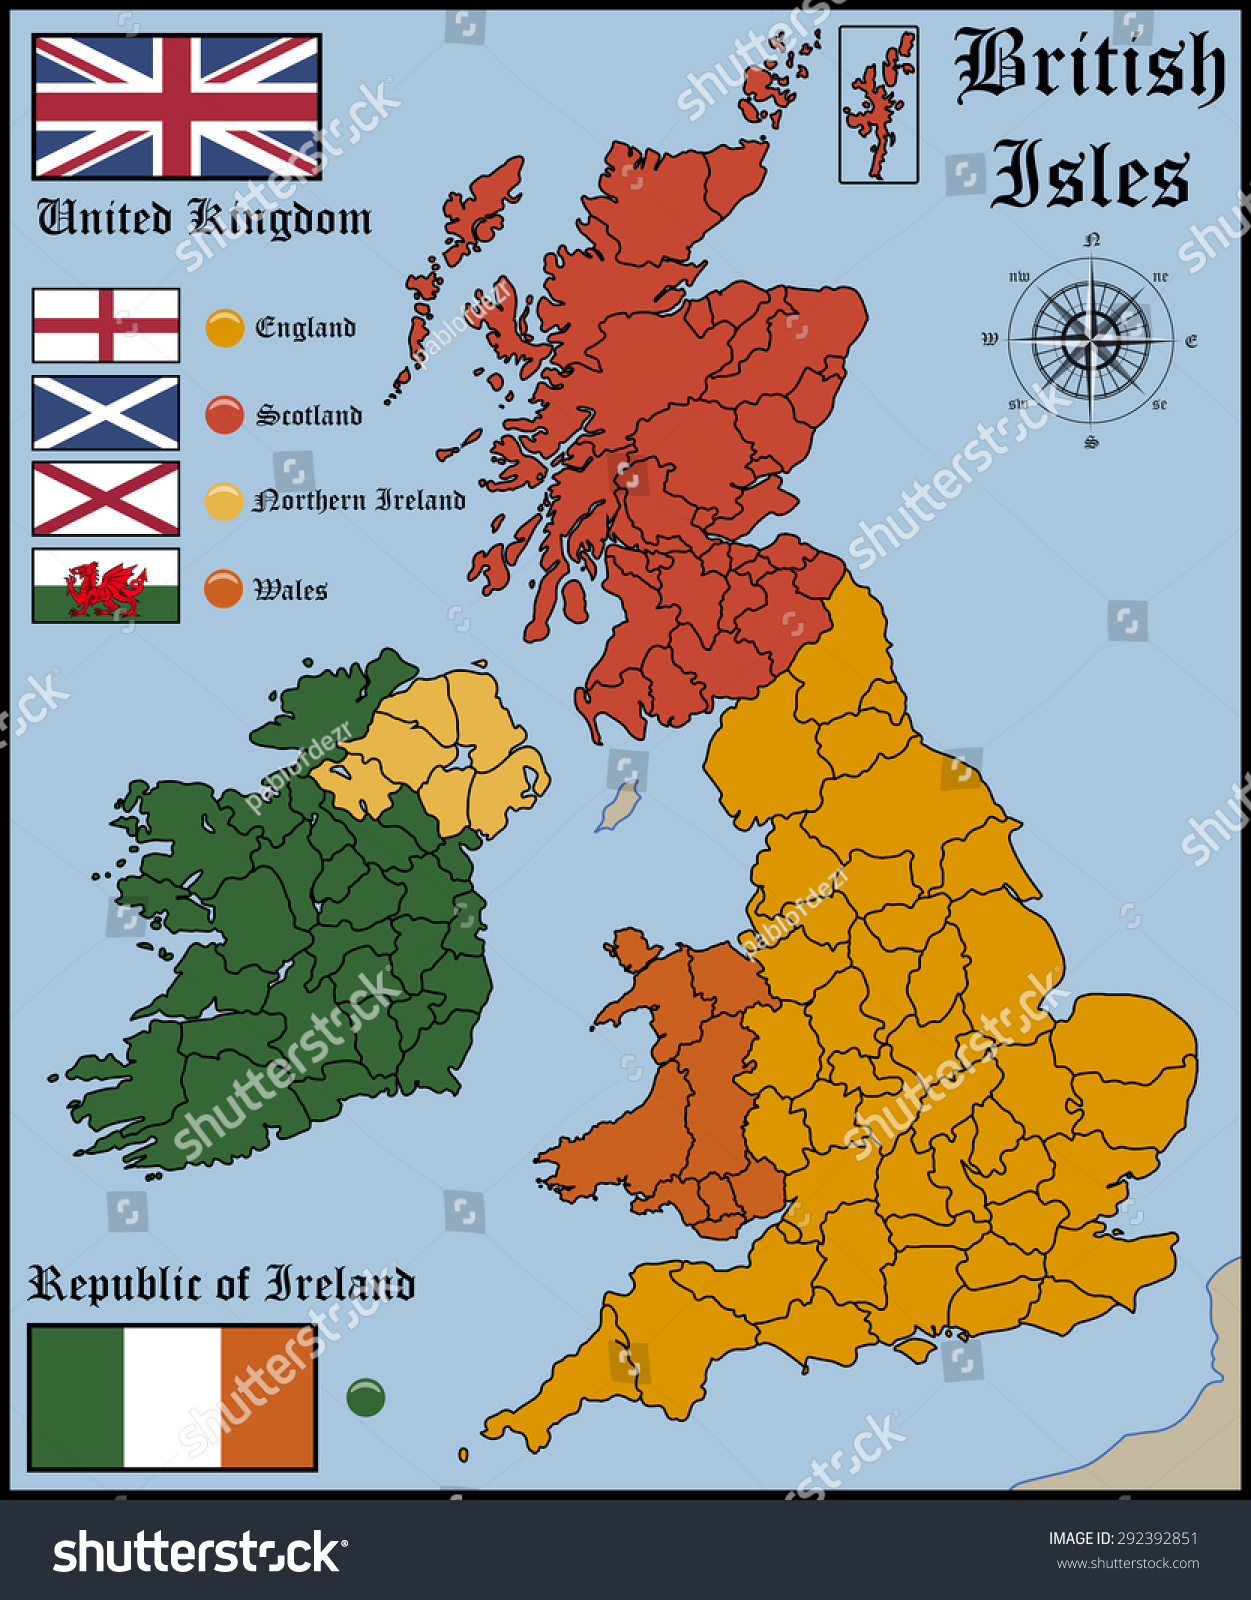 Map And Flags Of British Isles Stock Vector